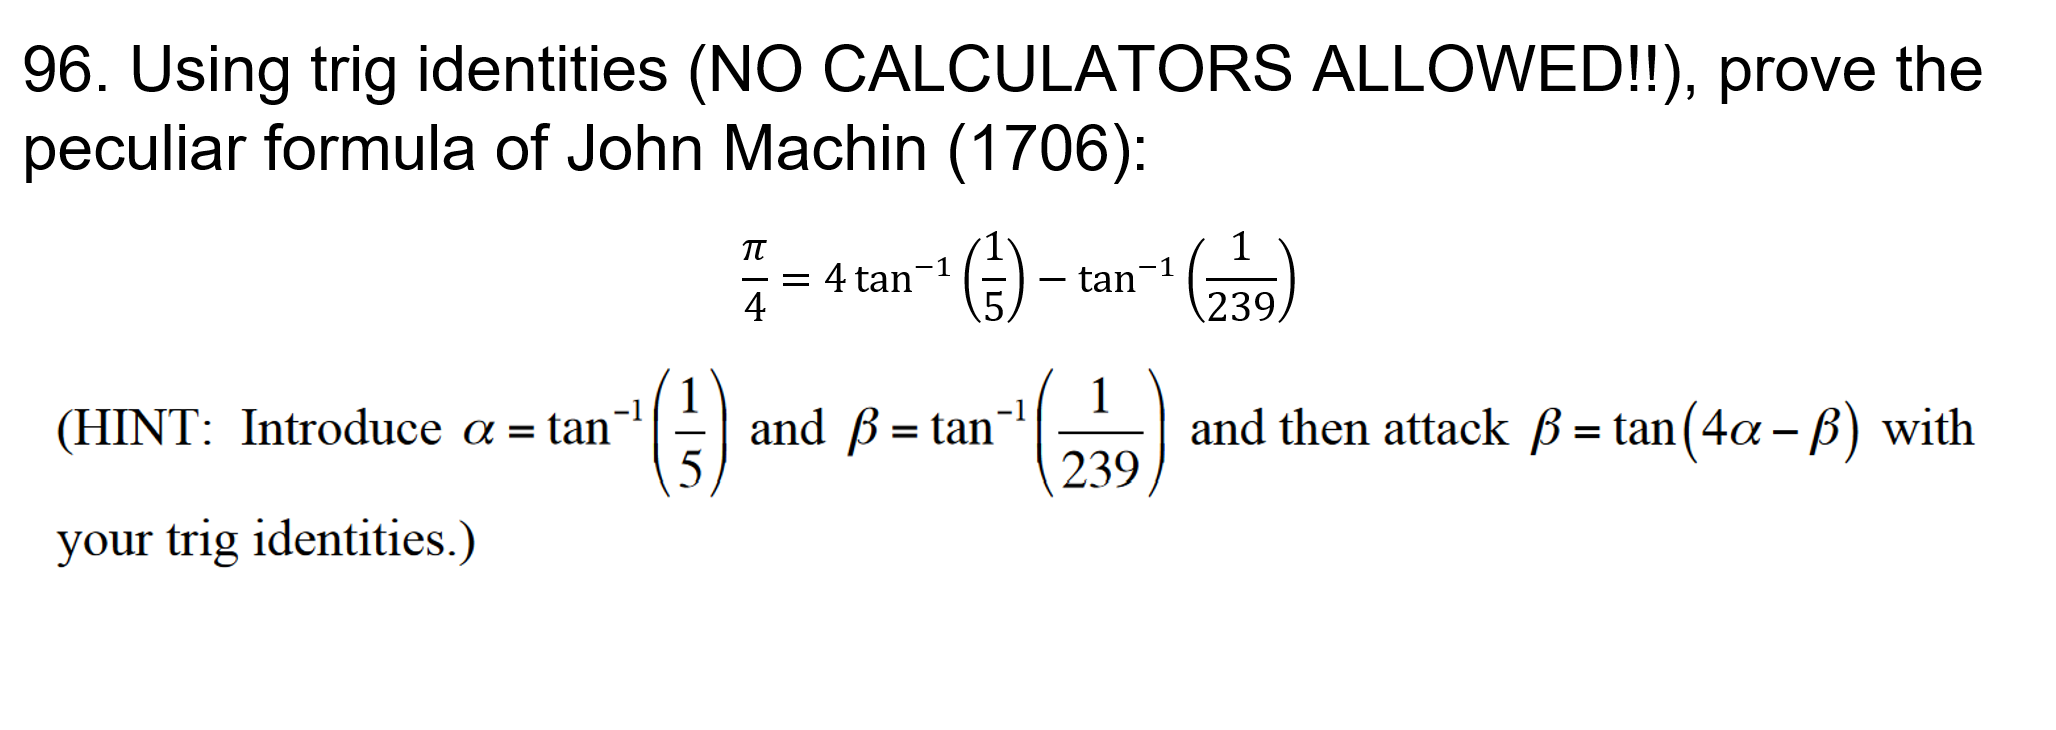 96. Using trig identities (NO CALCULATORS ALLOWED!!), prove the peculiar formula of John Machin (1706): TT -1 = 4 tan-1 4 tan 239 1 and then attack B= tan(4a - B) with 239 -1 and B tan (HINT: Introduce a = tan' = your trig identities.)